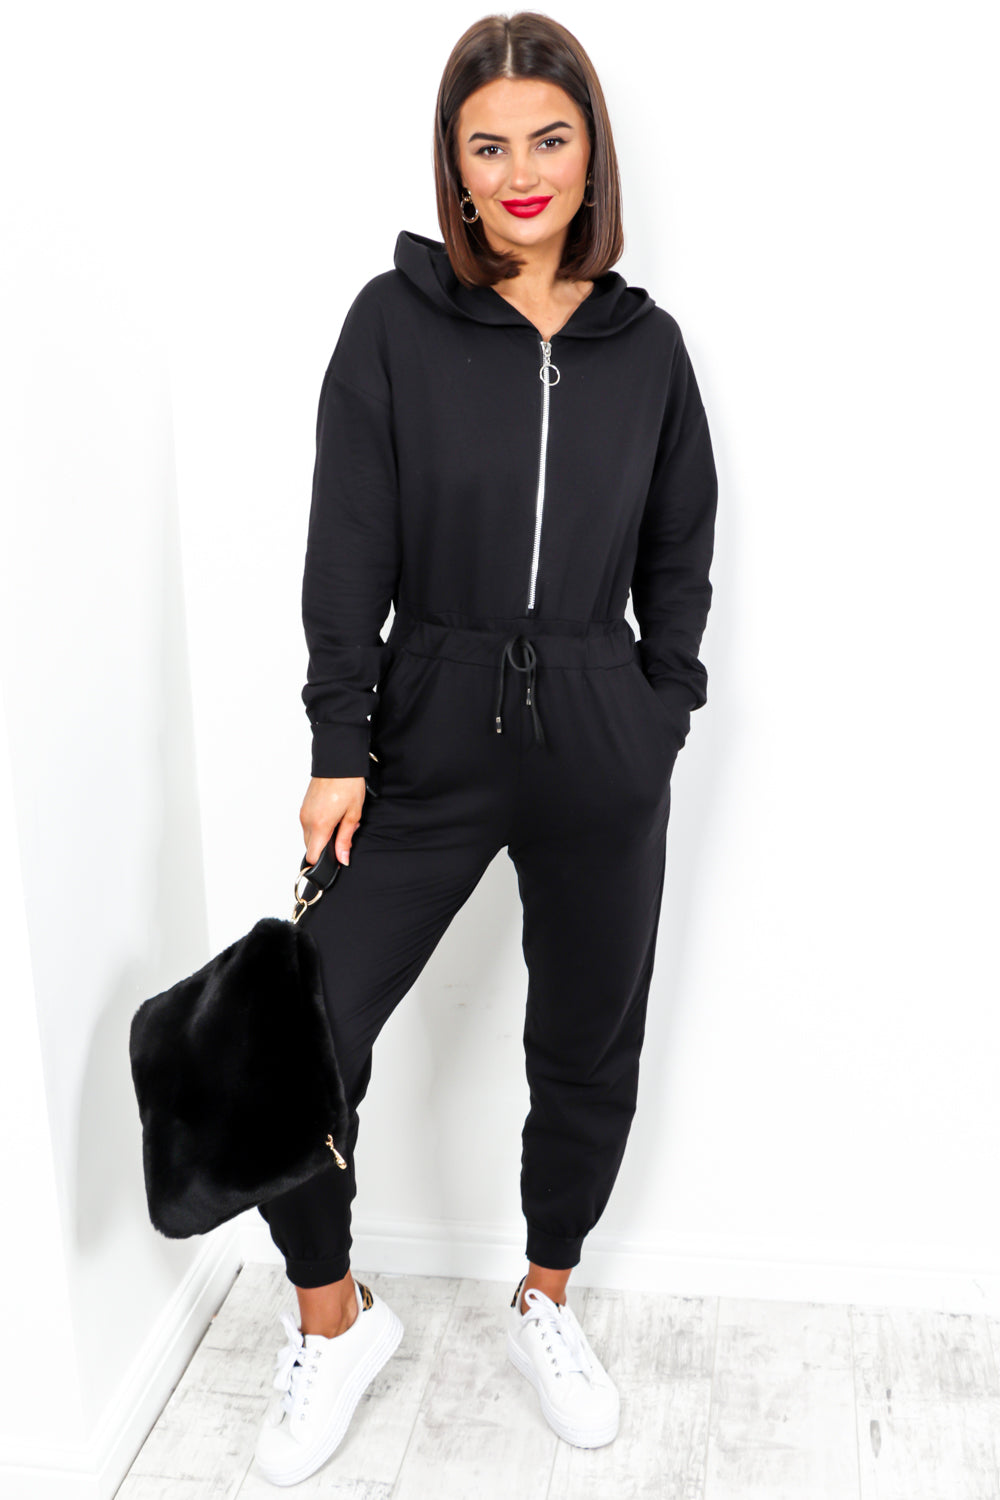 One Shot - Black Zip Front Casual Jumpsuit